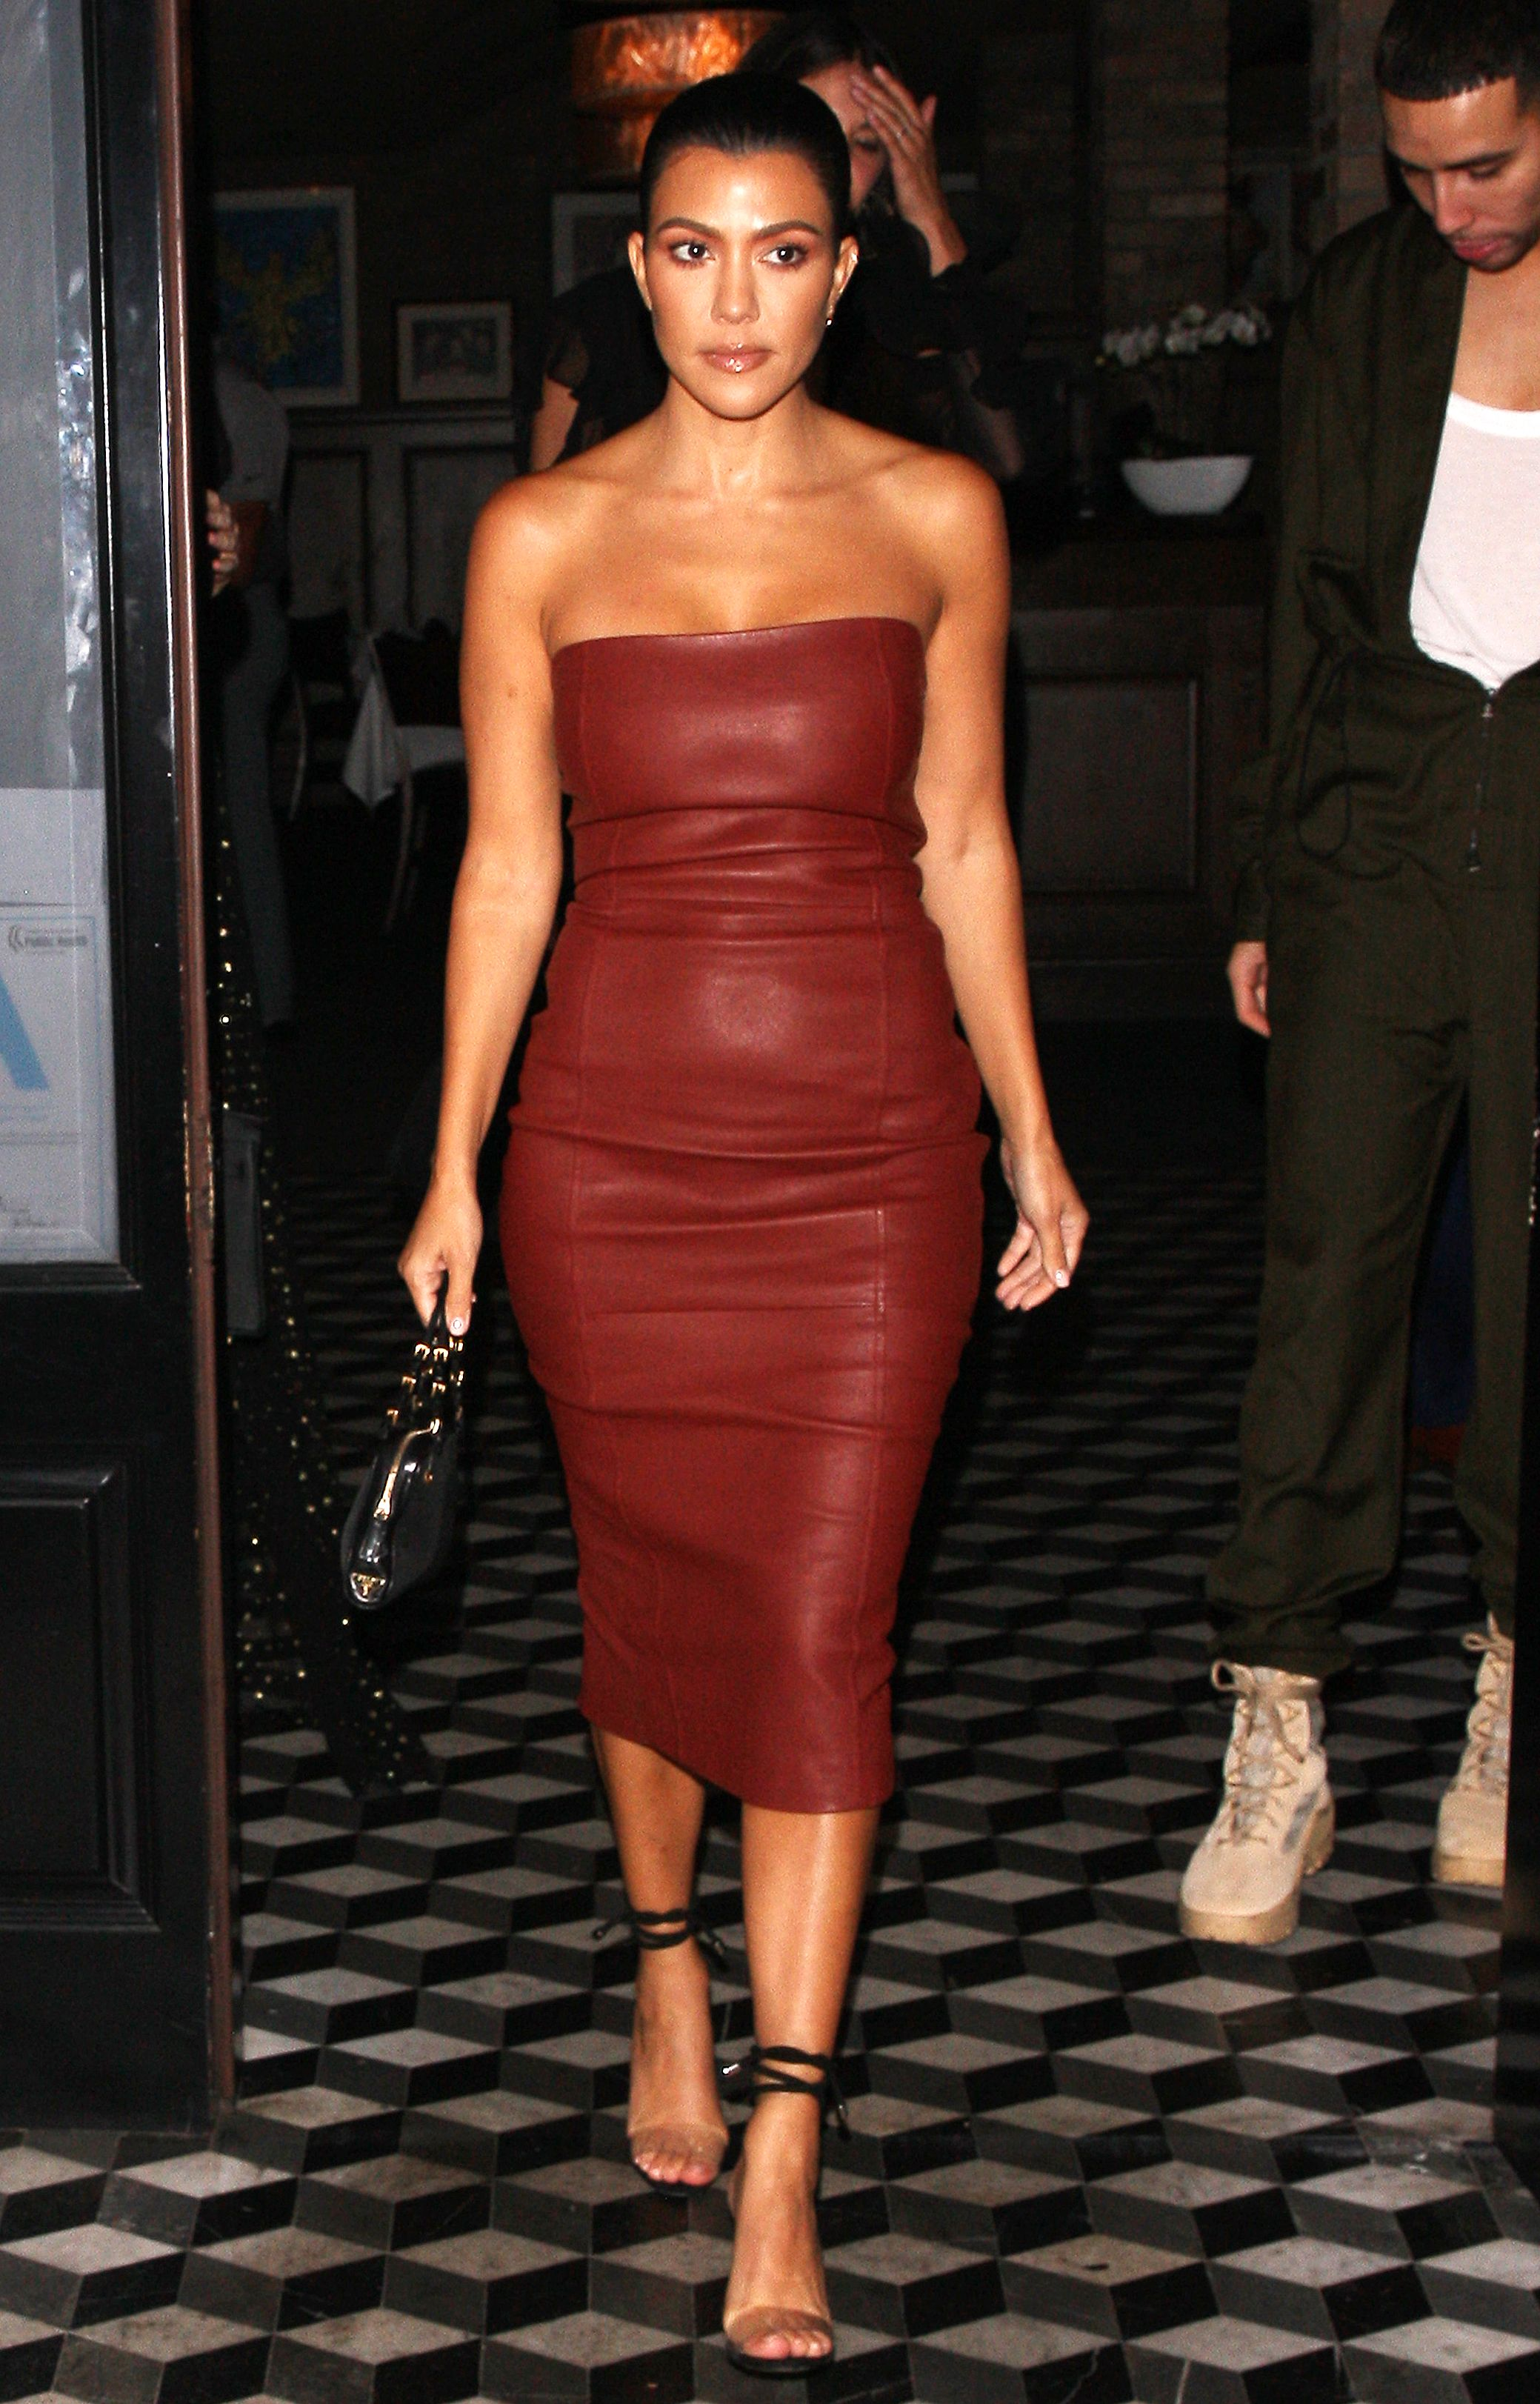 ac14677b2e39 Kourtney Kardashian in a strapless form-fitting midi, strappy heels and a  black handbag while leaving a dinner at Catch in L.A.